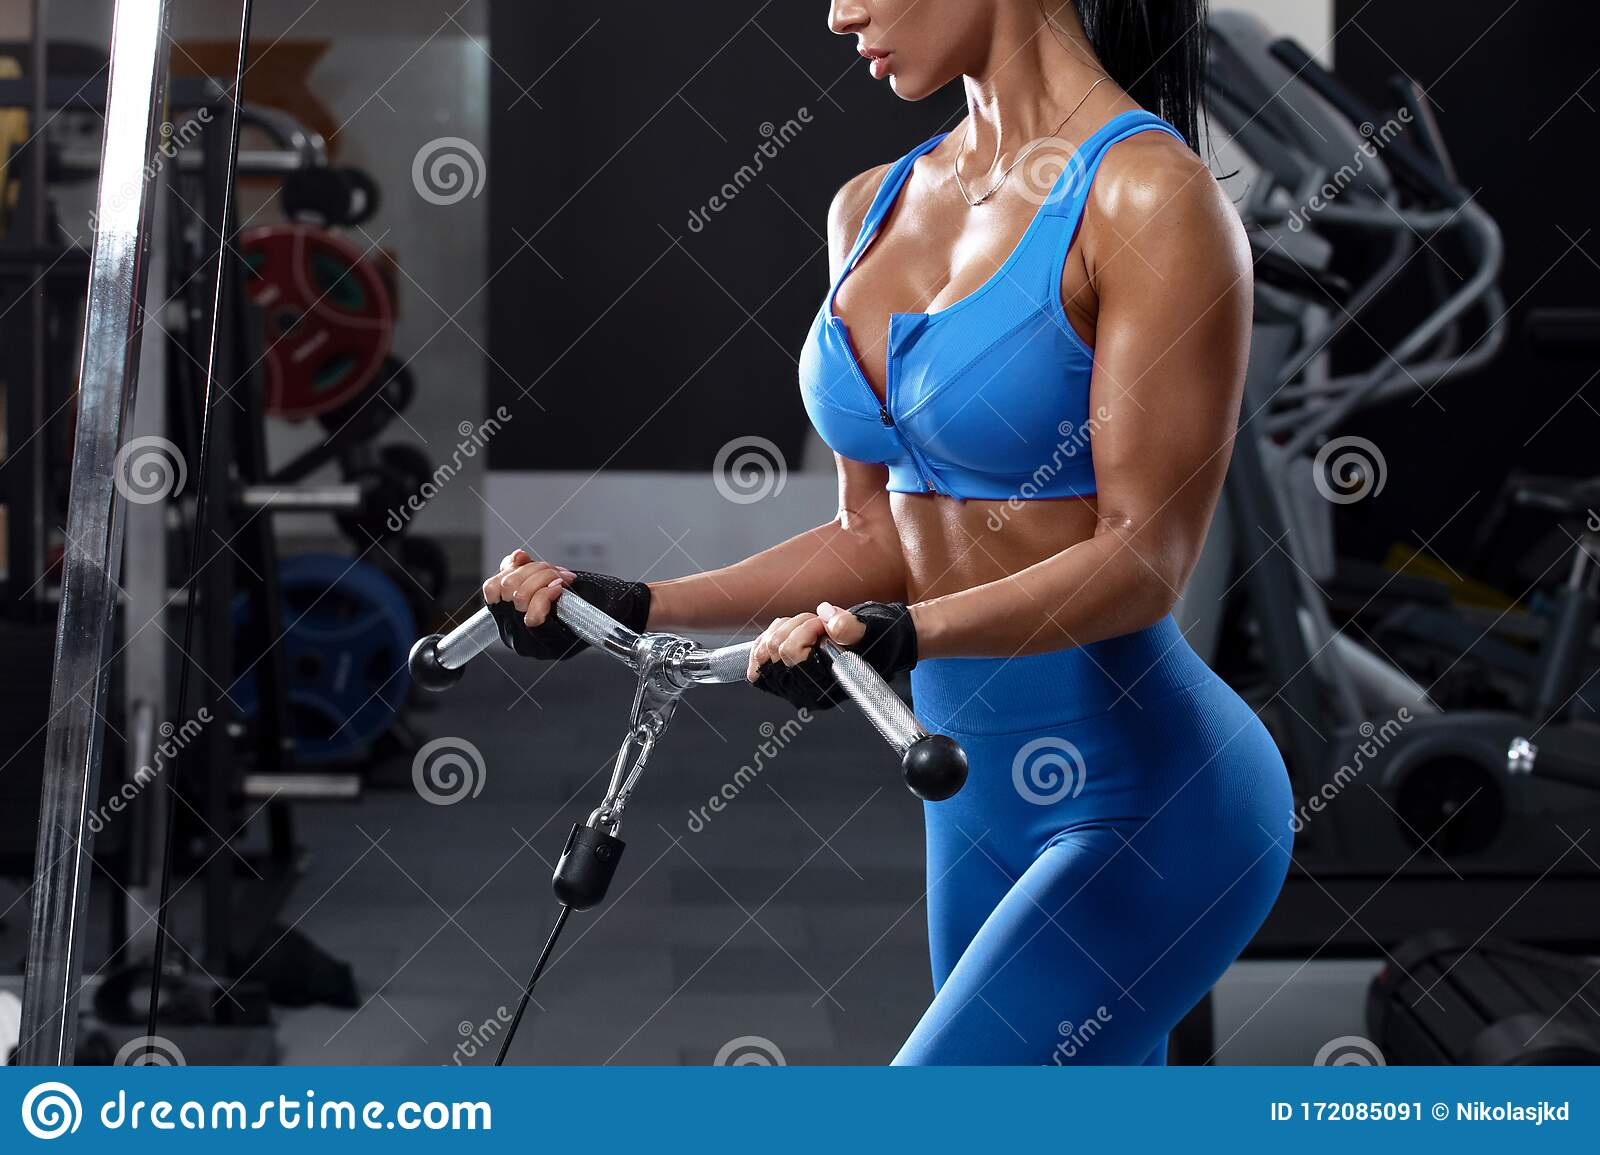 2 897 Girl Butt Photos Free Royalty Free Stock Photos From Dreamstime I'm thinking we should find her (37 photos). https www dreamstime com fitness woman working out gym athletic girl doing exercise biceps beautiful butt leggings image172085091